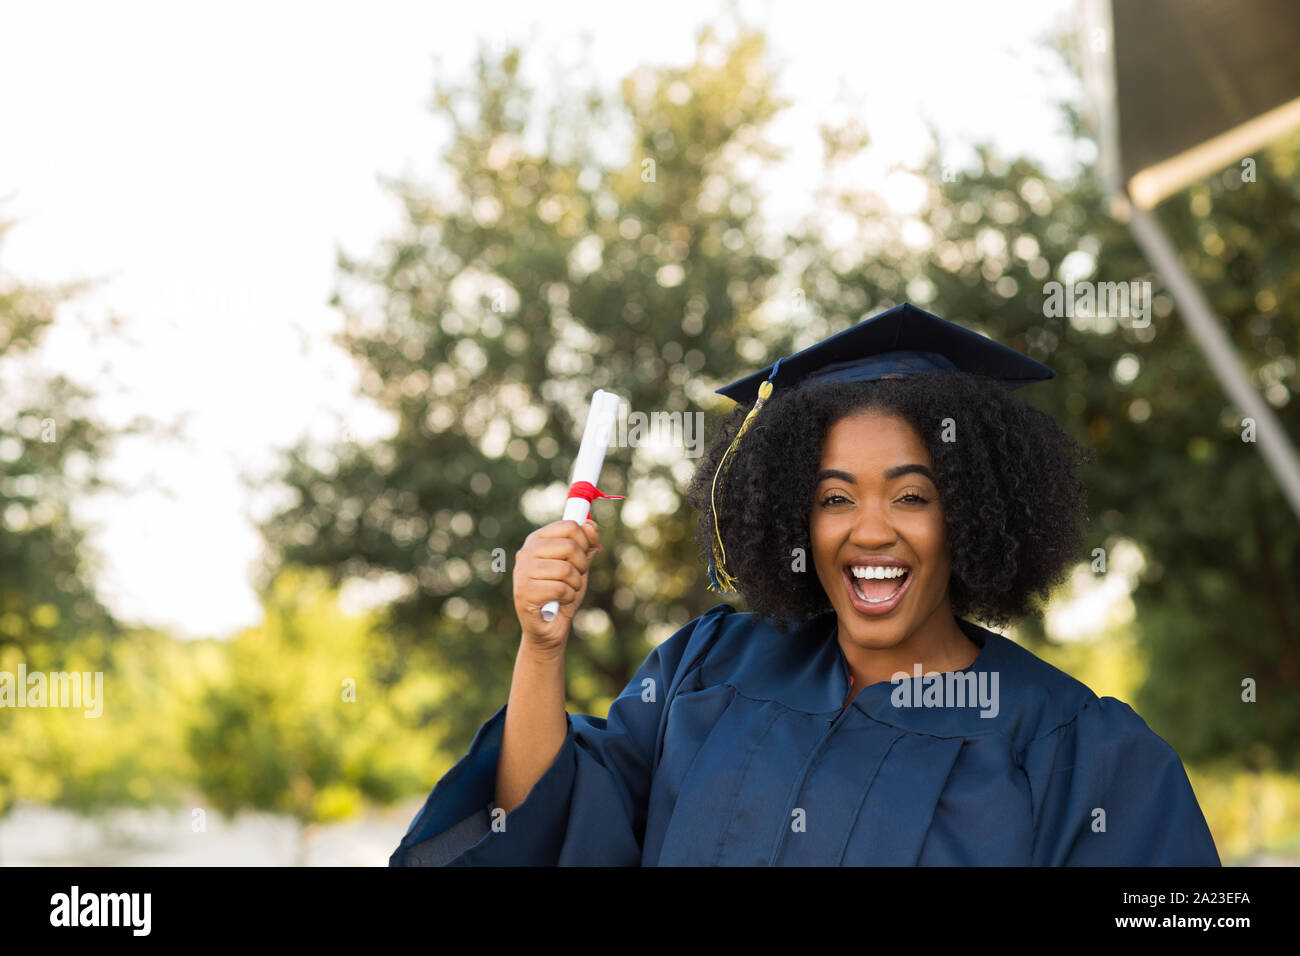 Confident African American woman at her graduation. Stock Photo